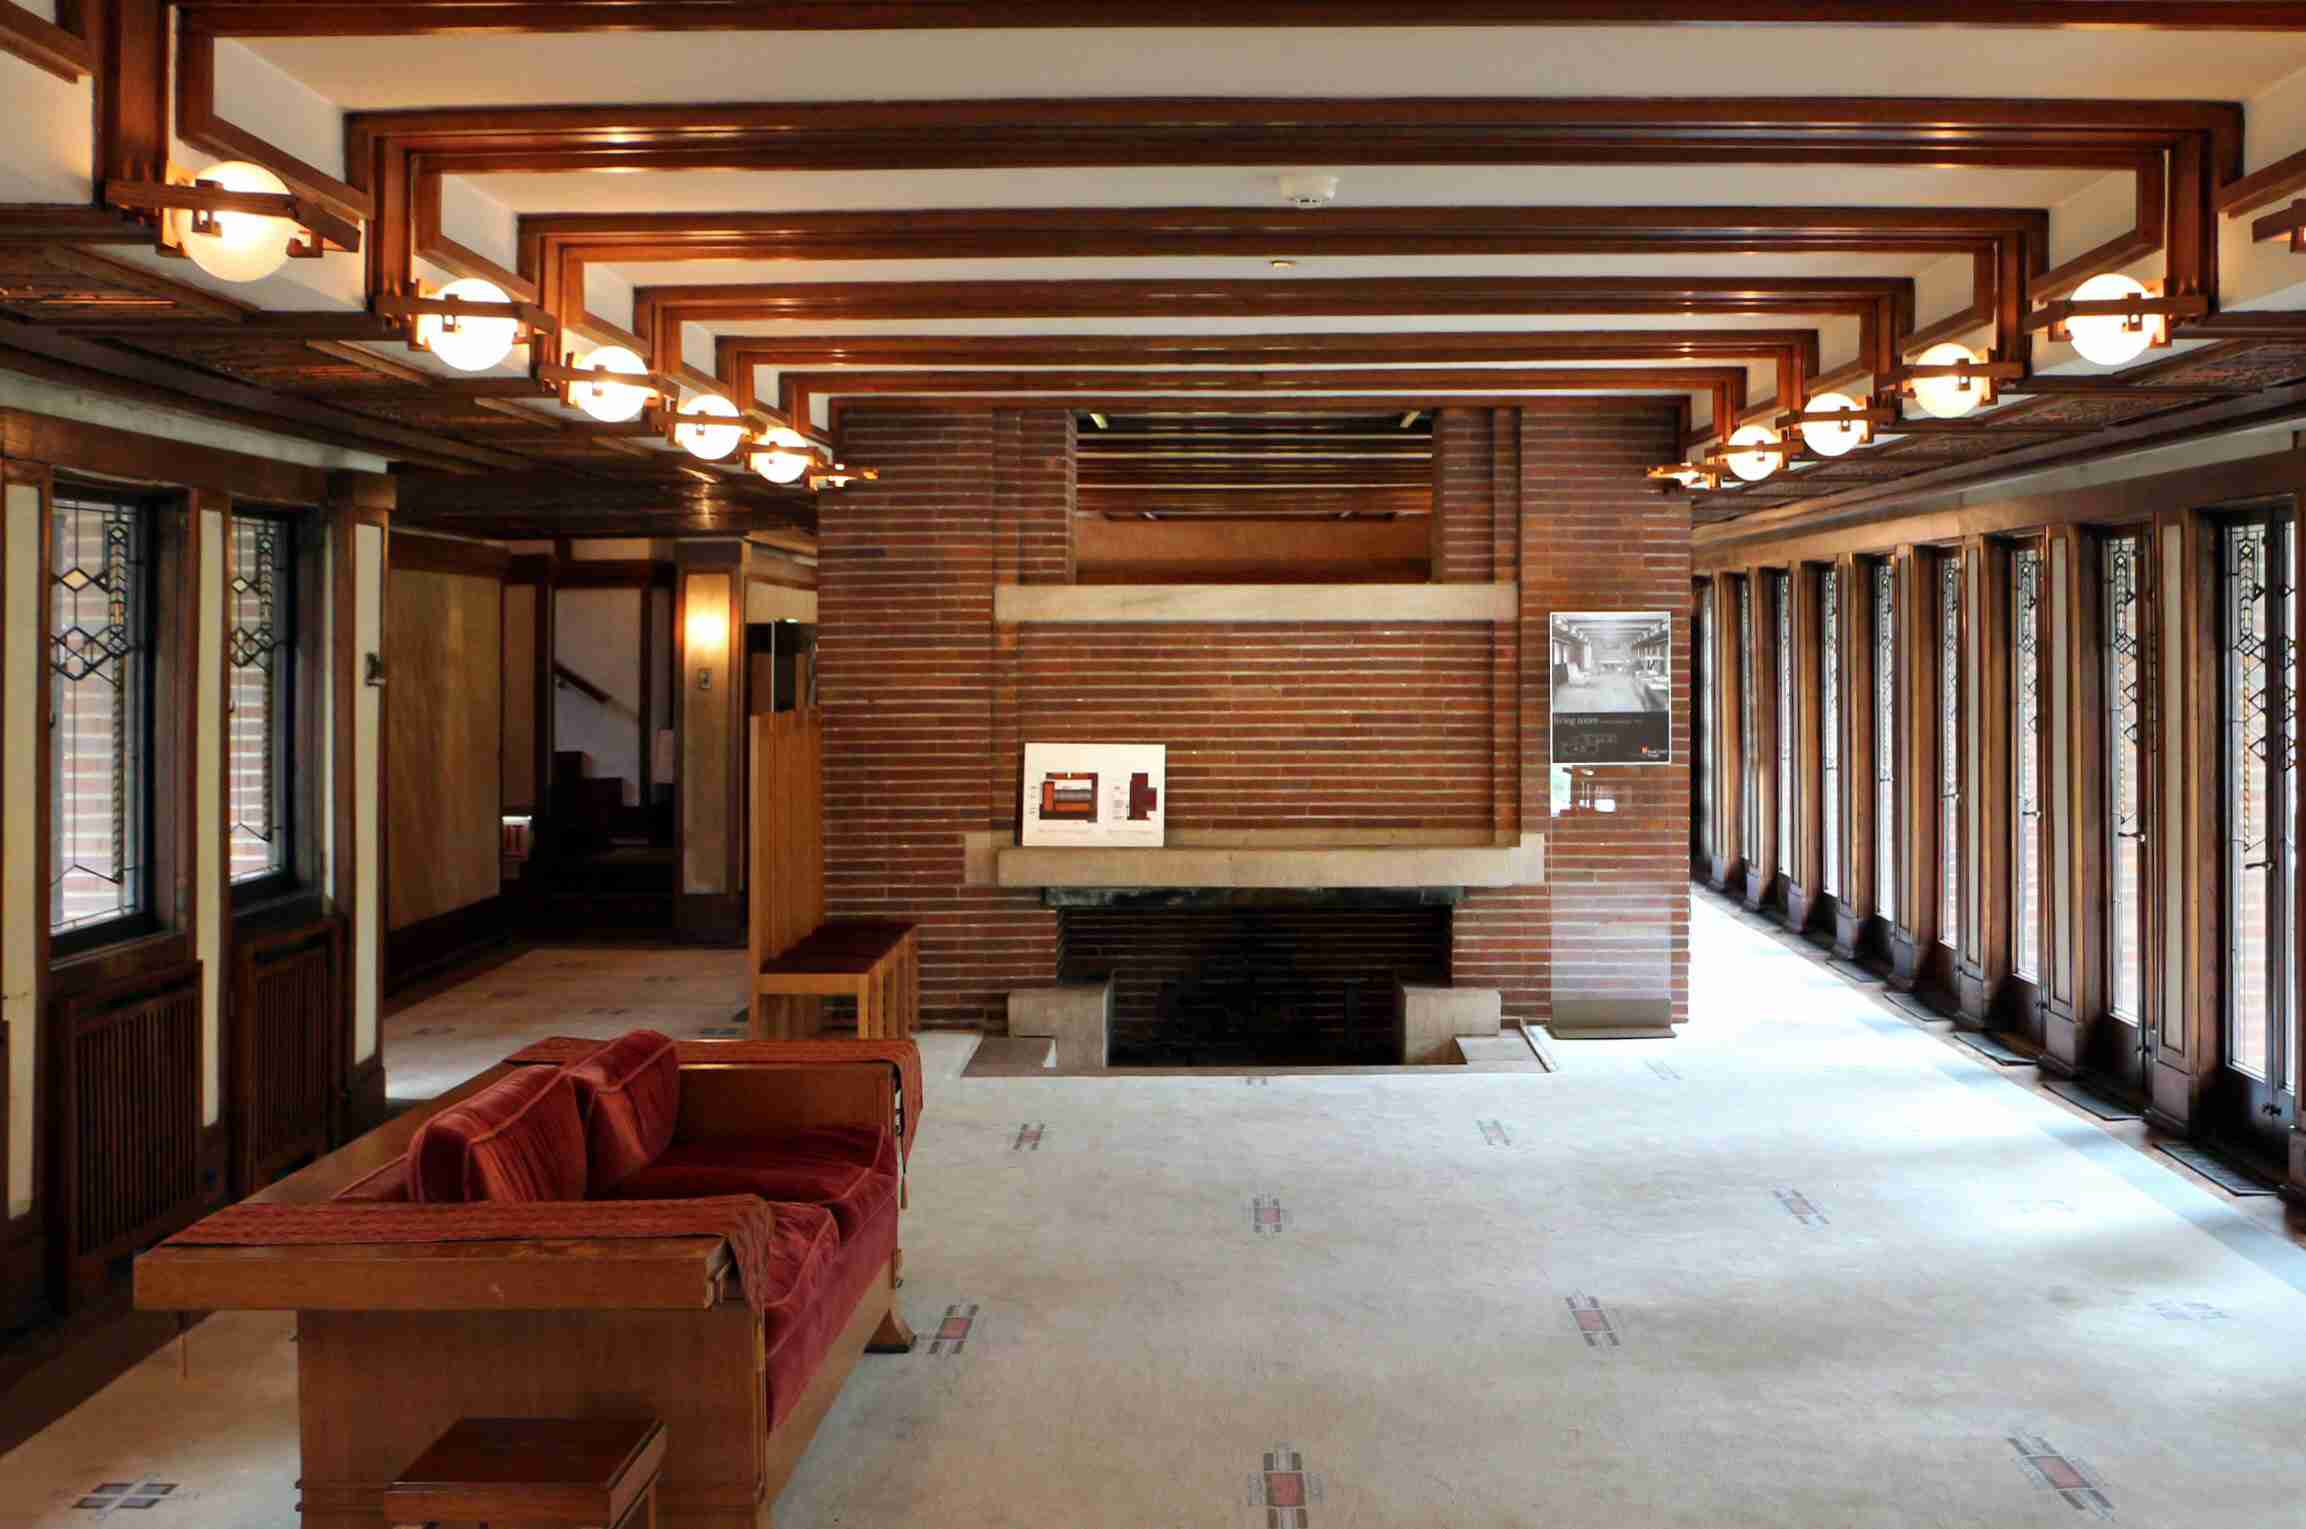 Wright's Architecture of Space and Interior Designs